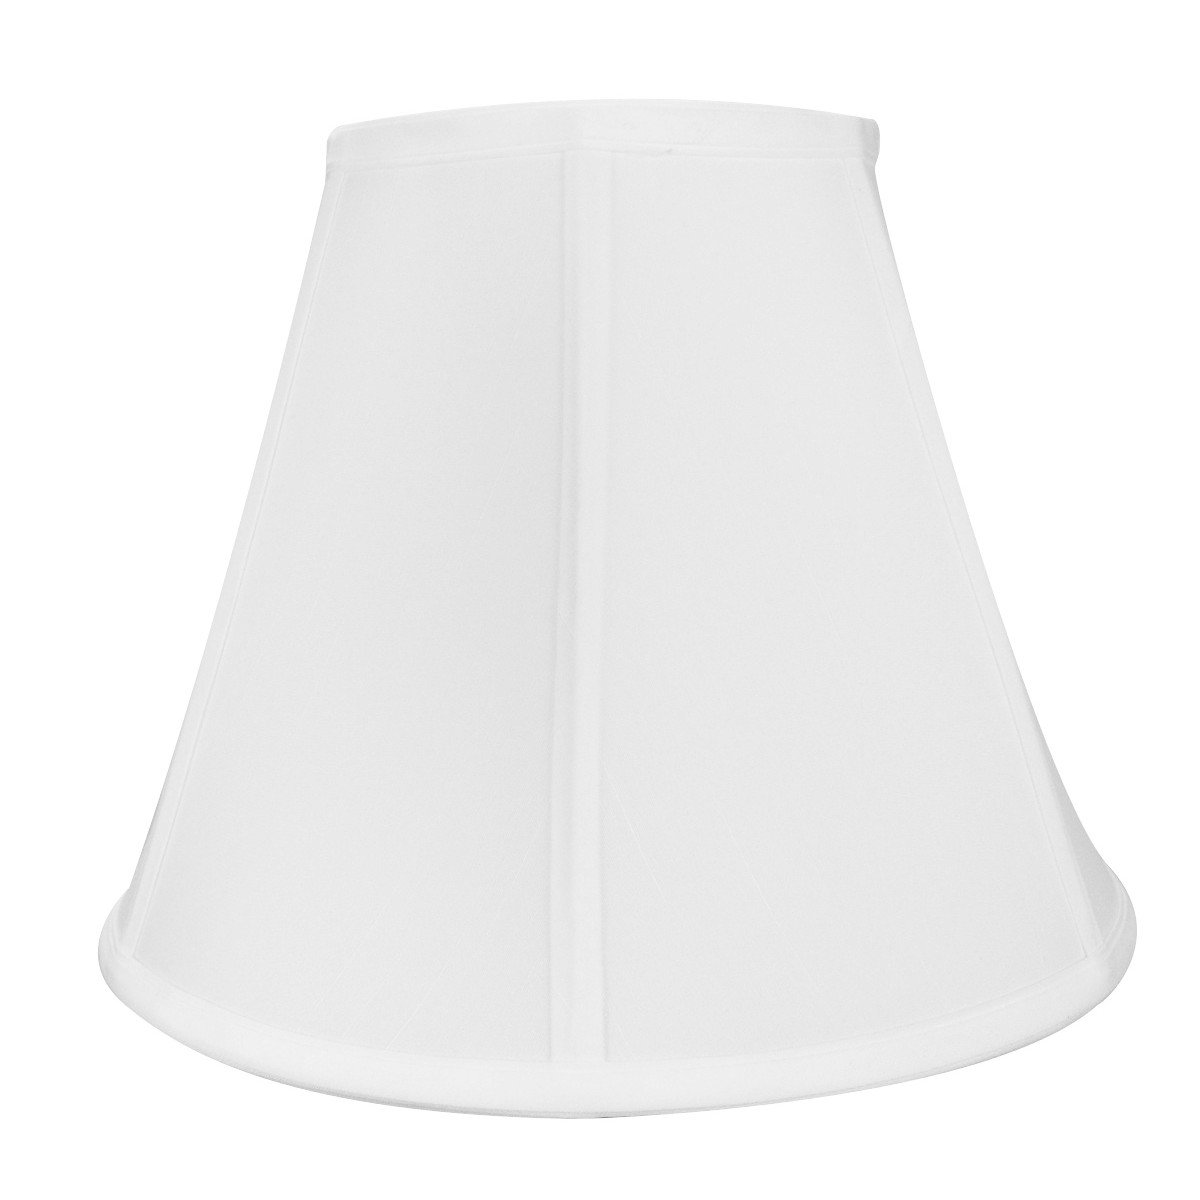 6x12x9 Empire Hardback Lampshade White Linen By Home Concept - Perfect for small table lamps, desk lamps, and accent lights -Medium, White